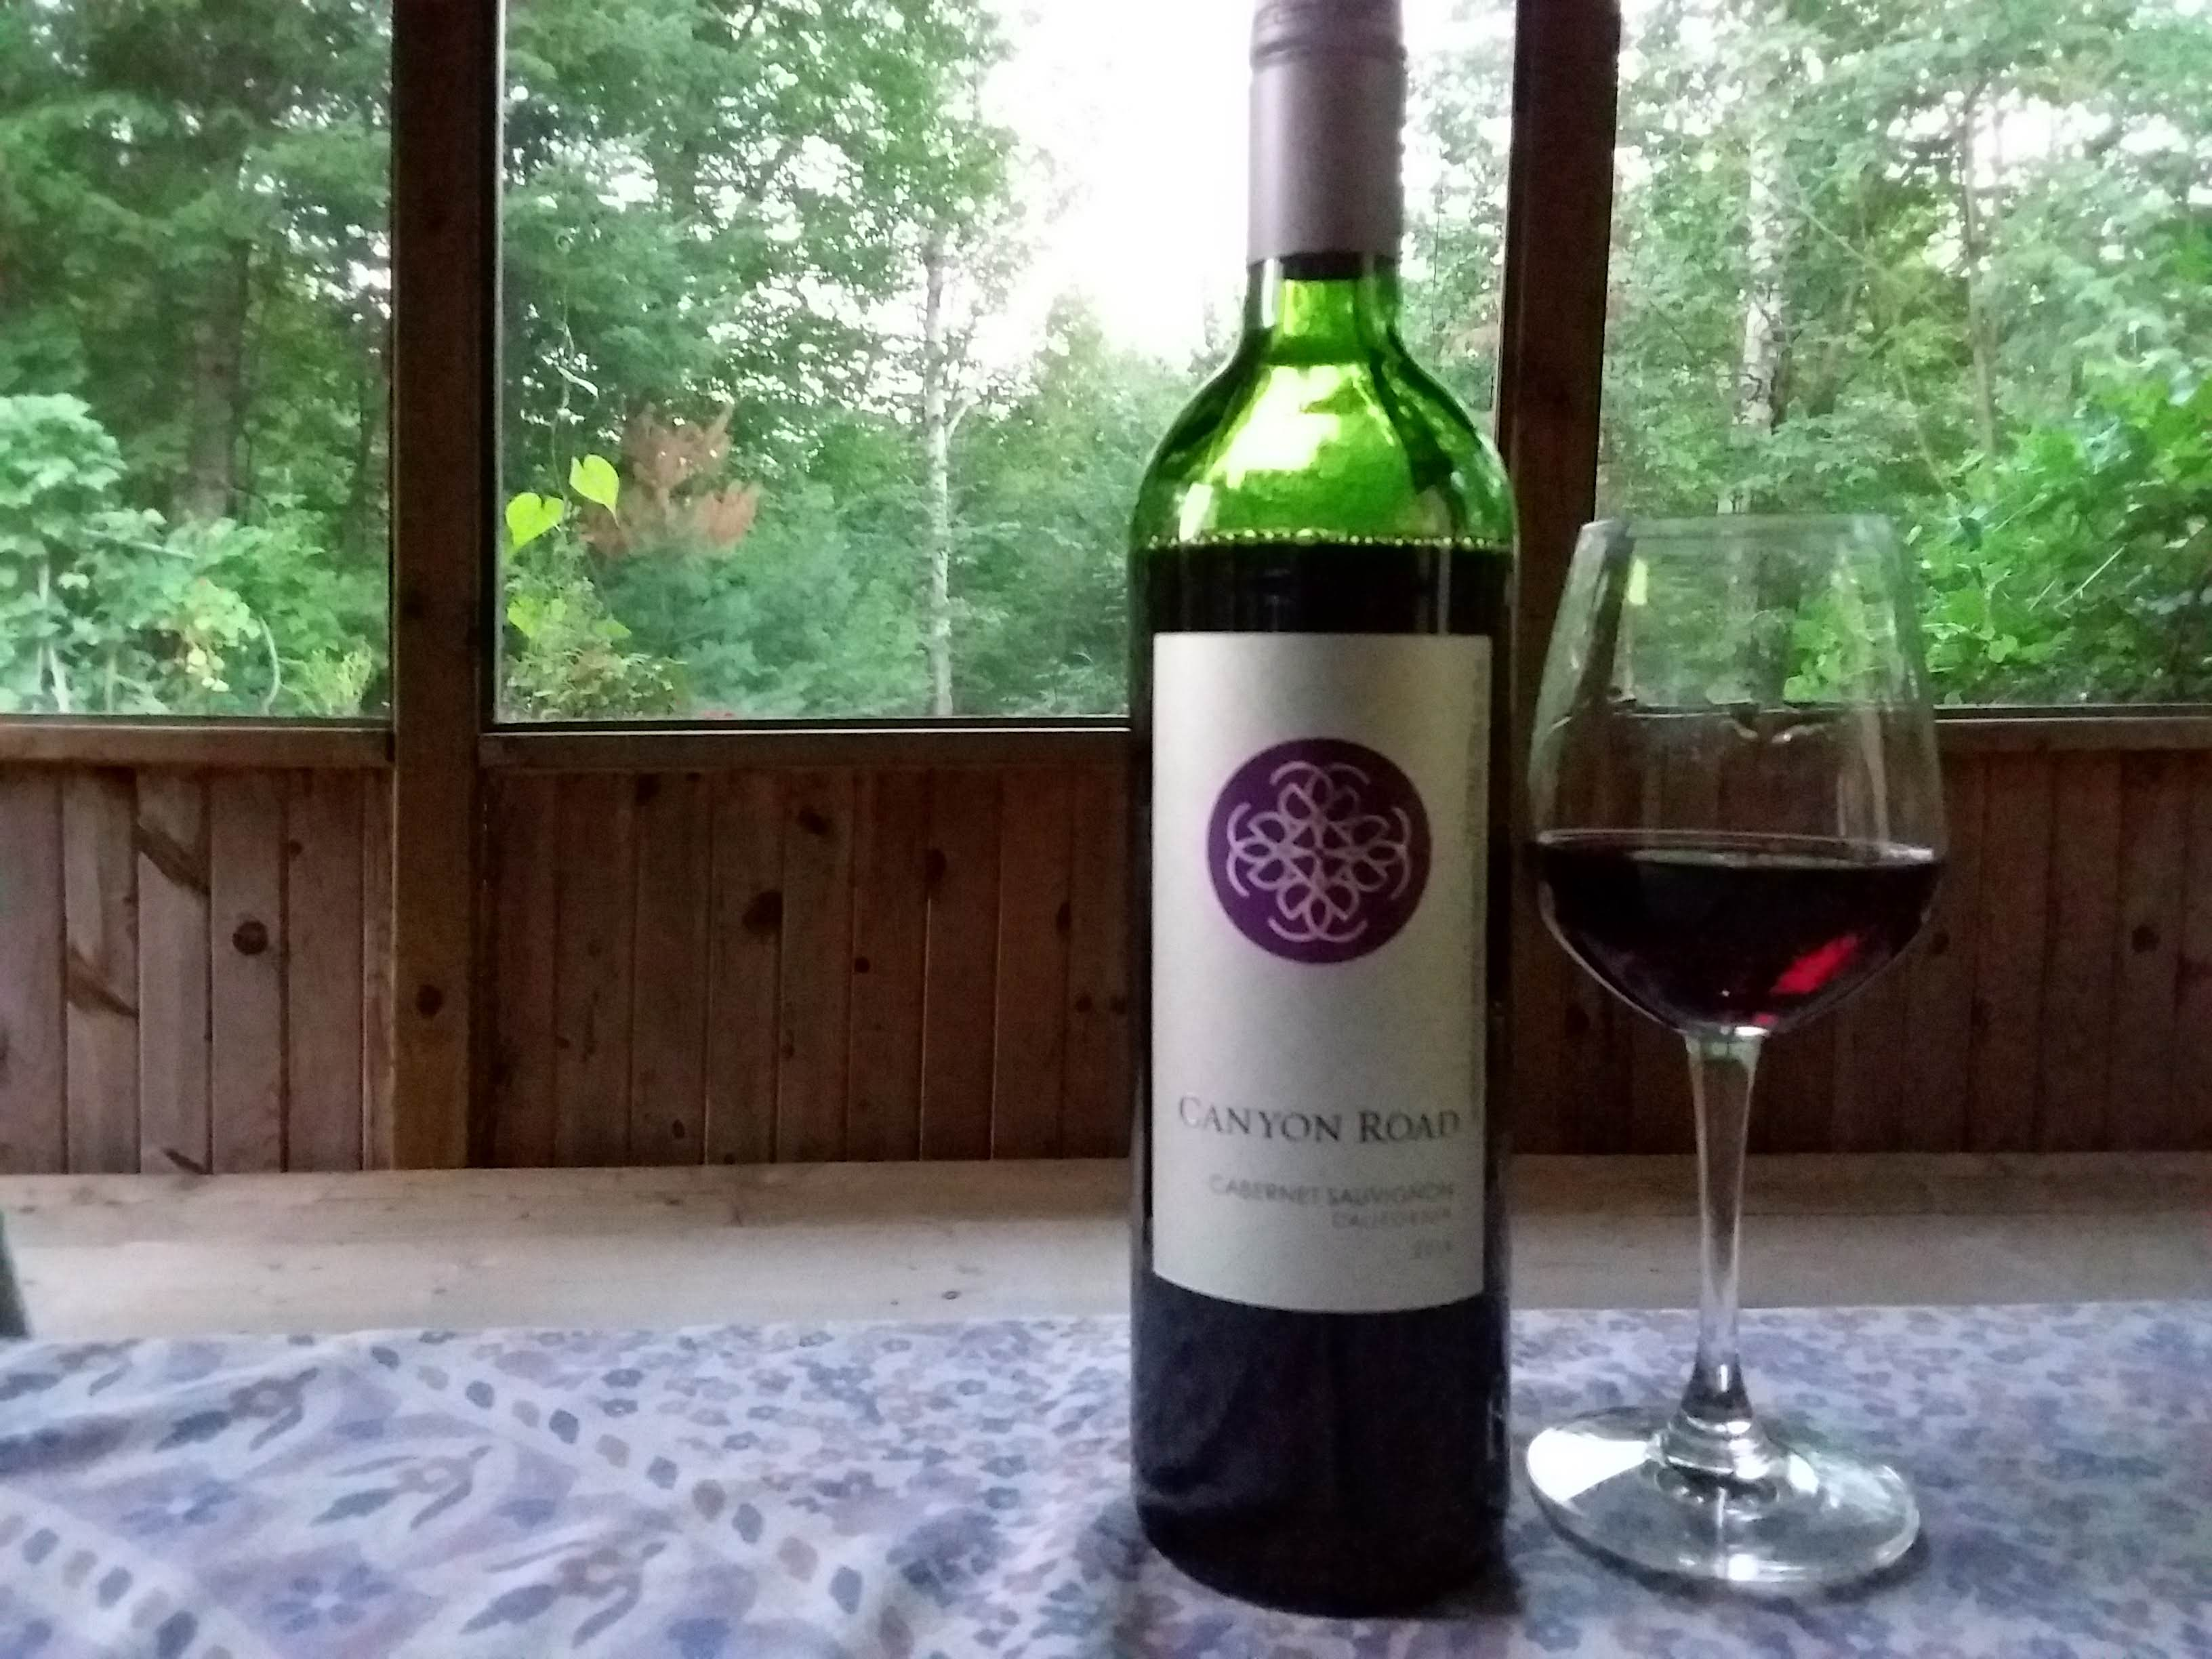 Canyon Road Cabernet Sauvignon 2016